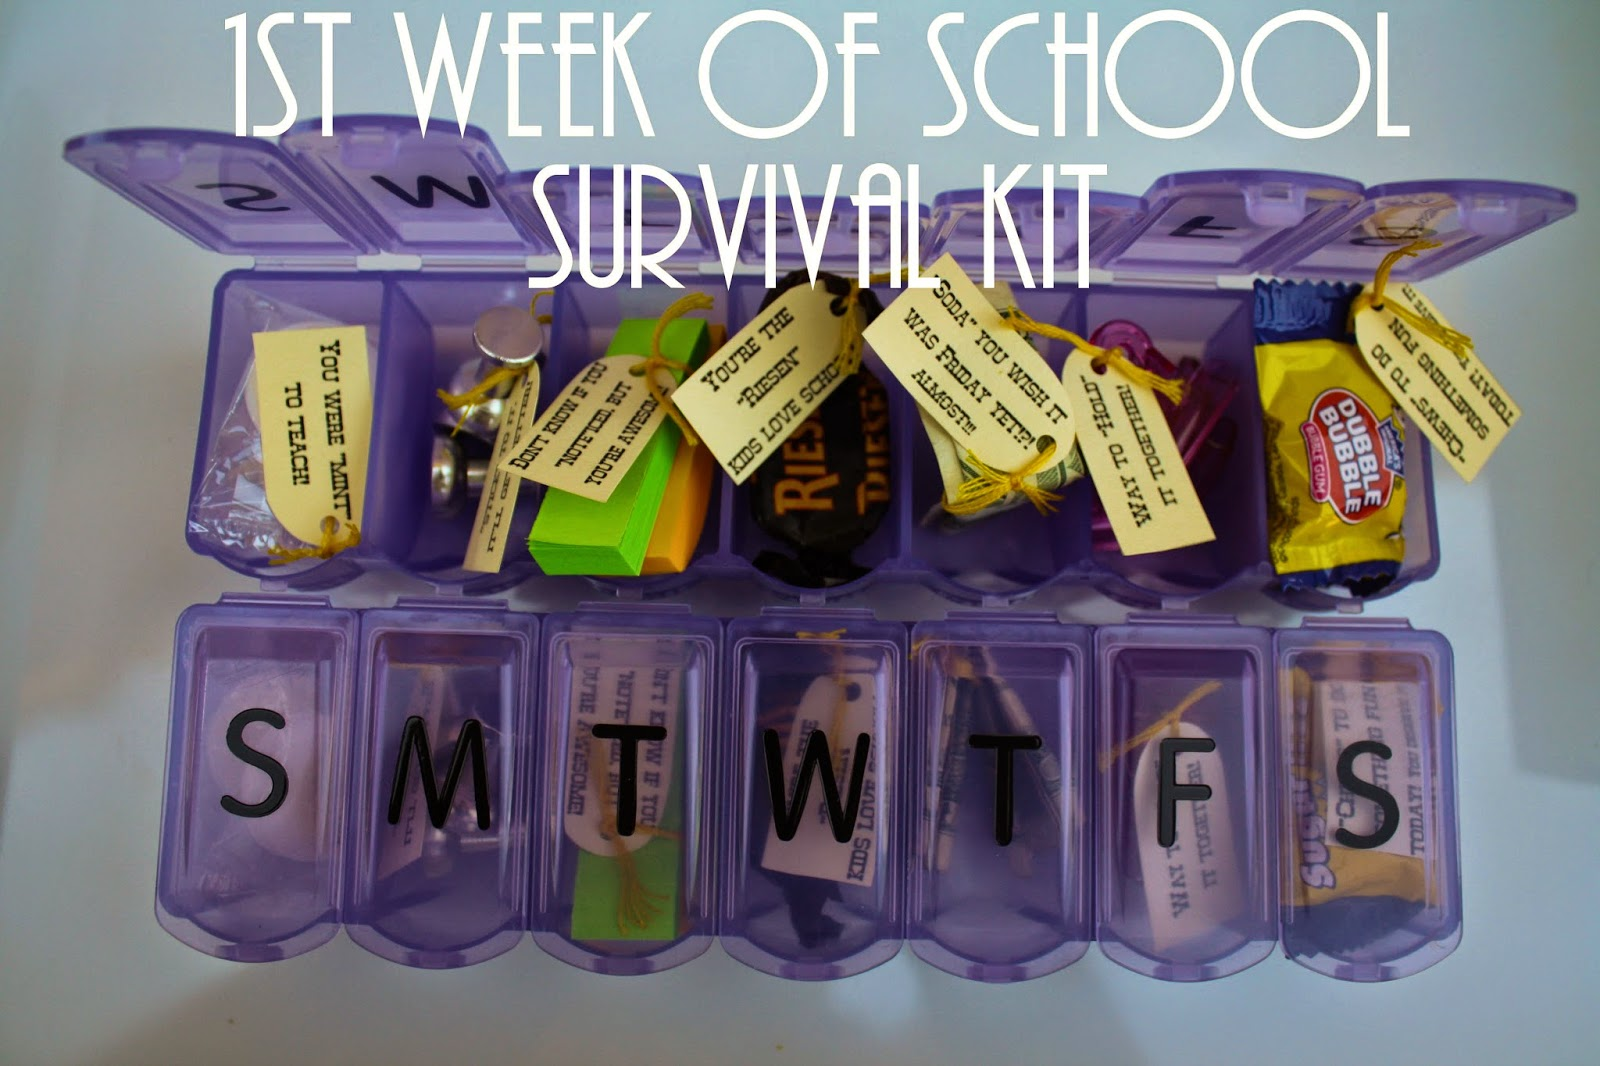 http://theballoonred.blogspot.com/2012/08/teacher-survival-kit.html